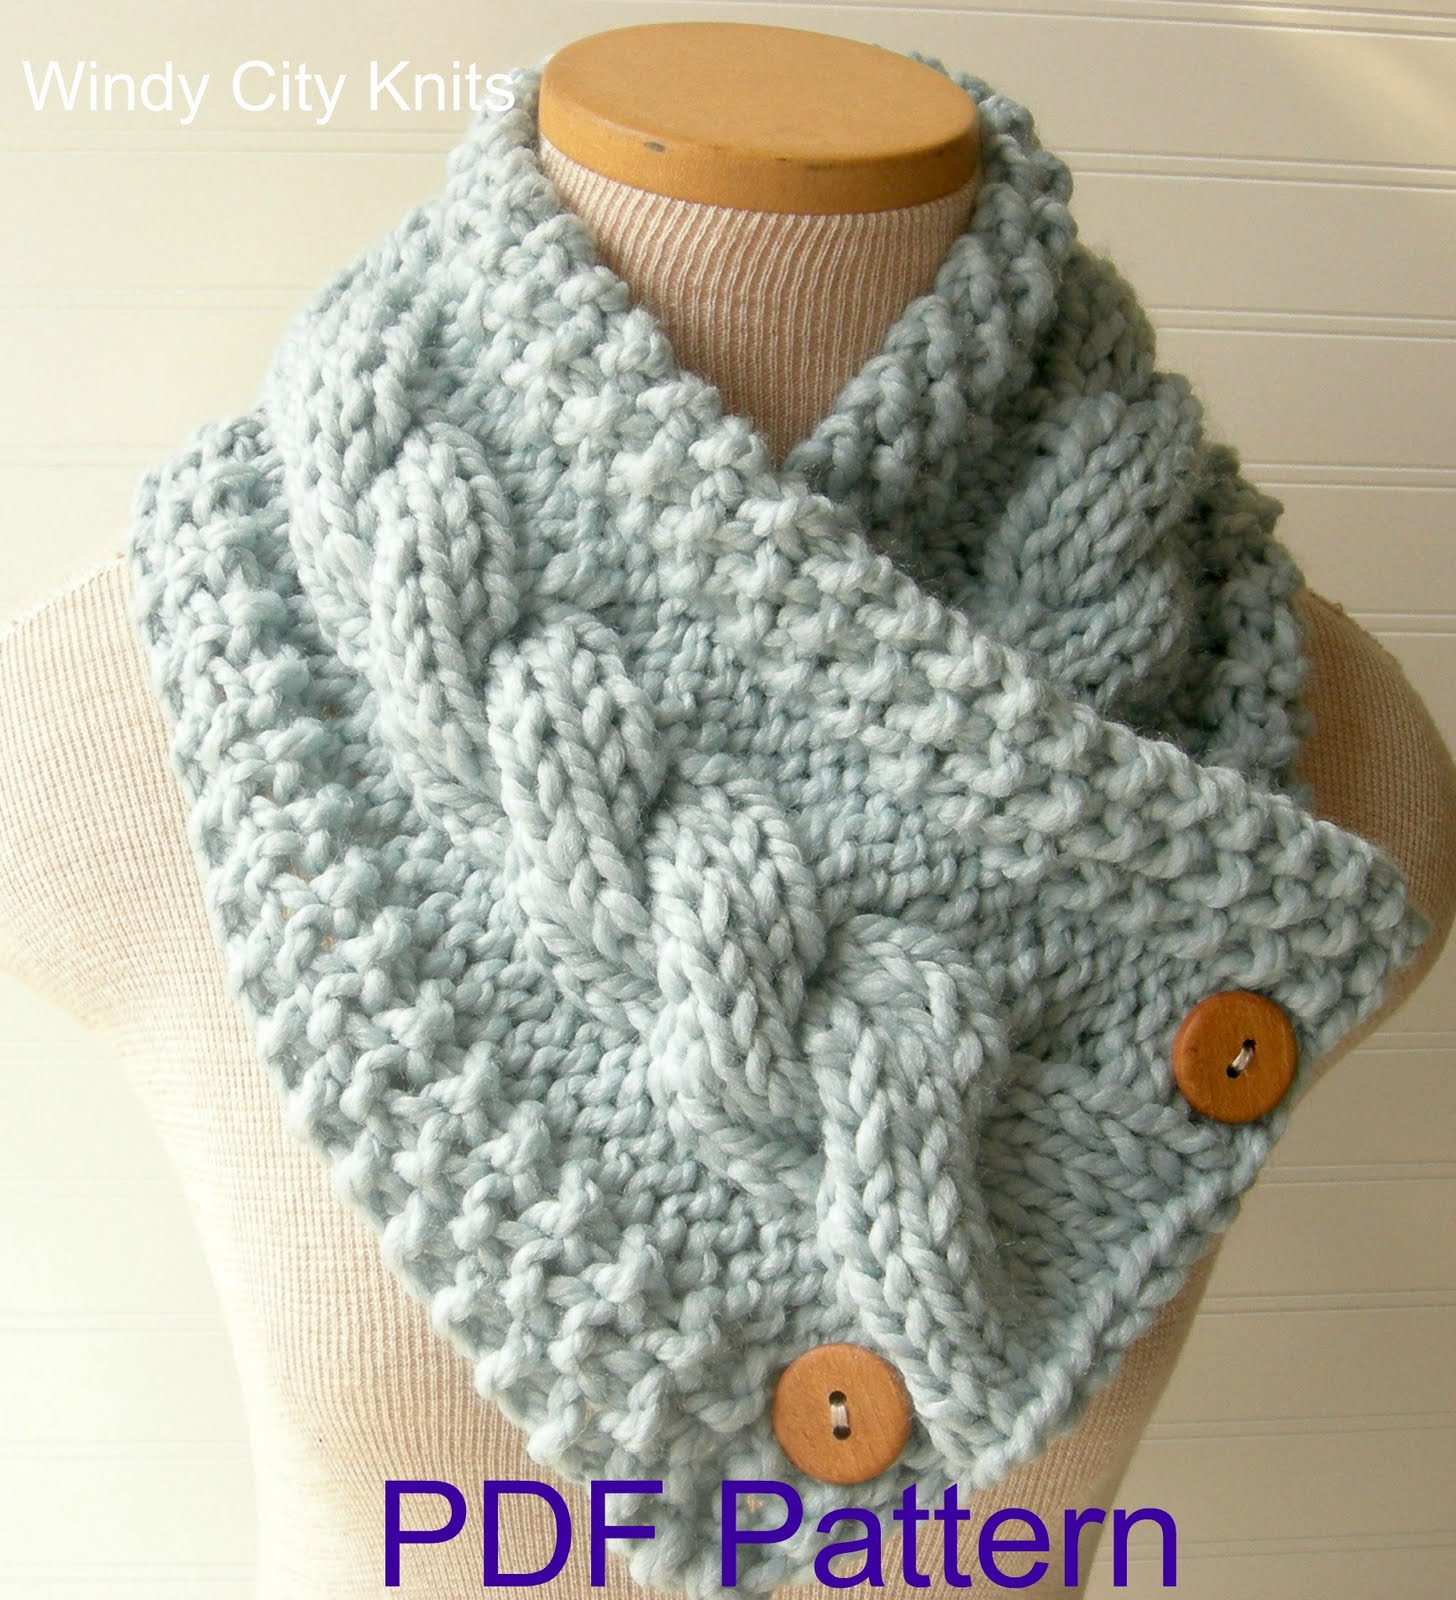 Knitting Cable Patterns Free : WindyCityKnits: Knit Cable Cowl Scarf Pattern Pdf